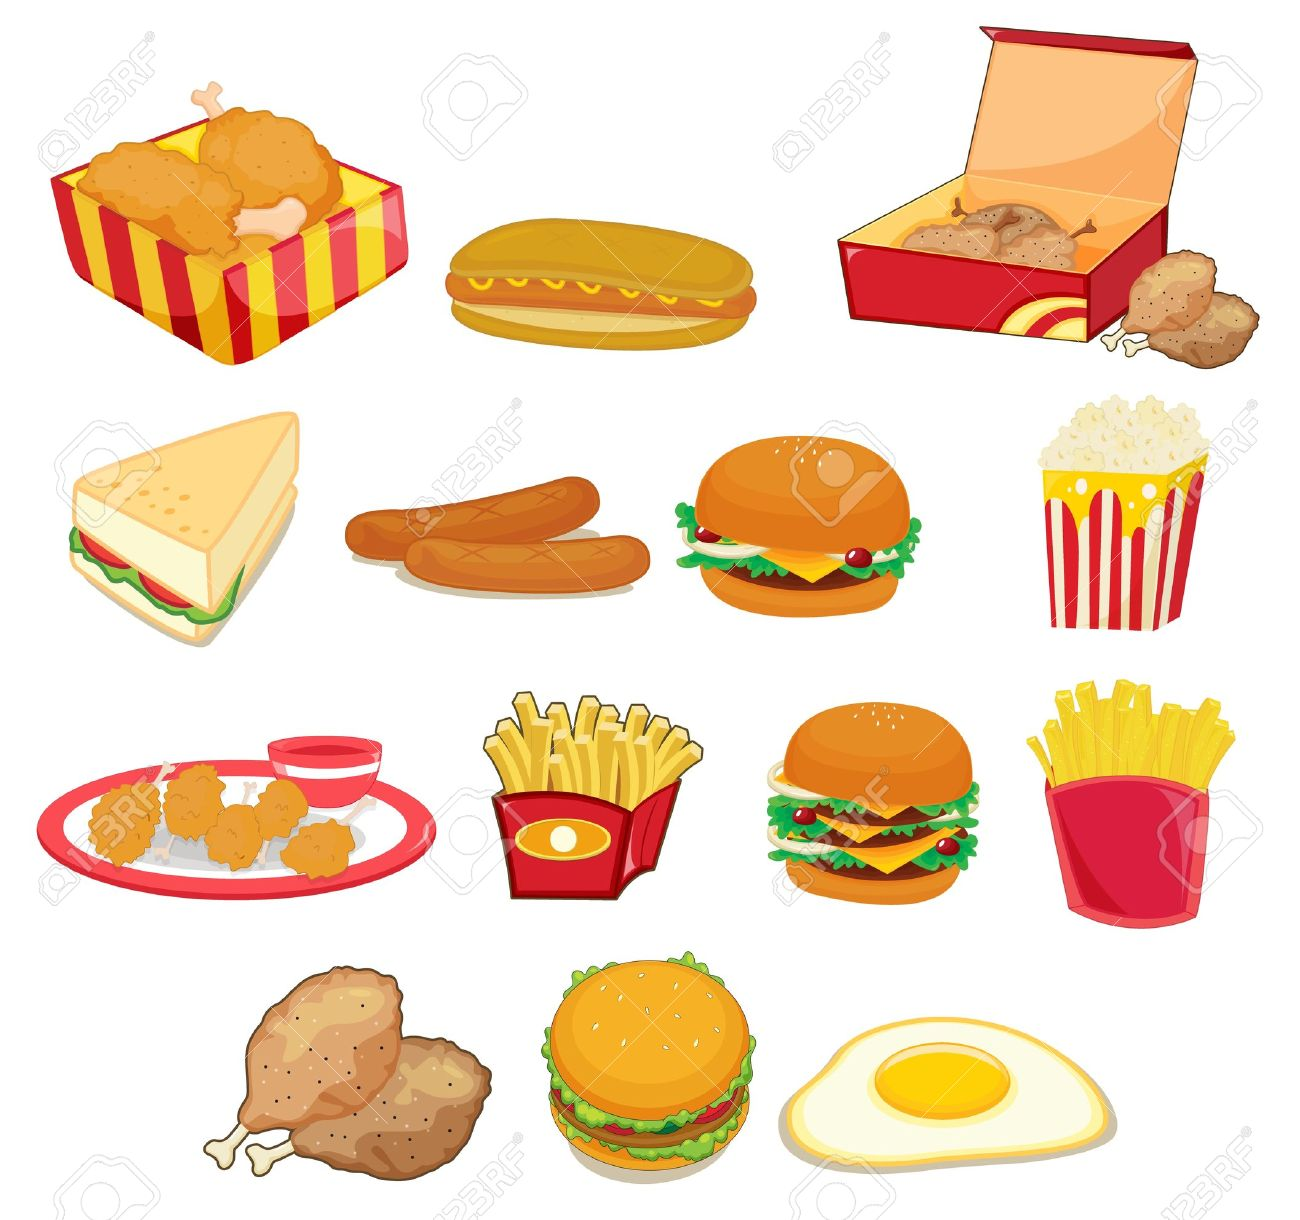 Best Junk Food Clipart #16413 - Clipartion.com